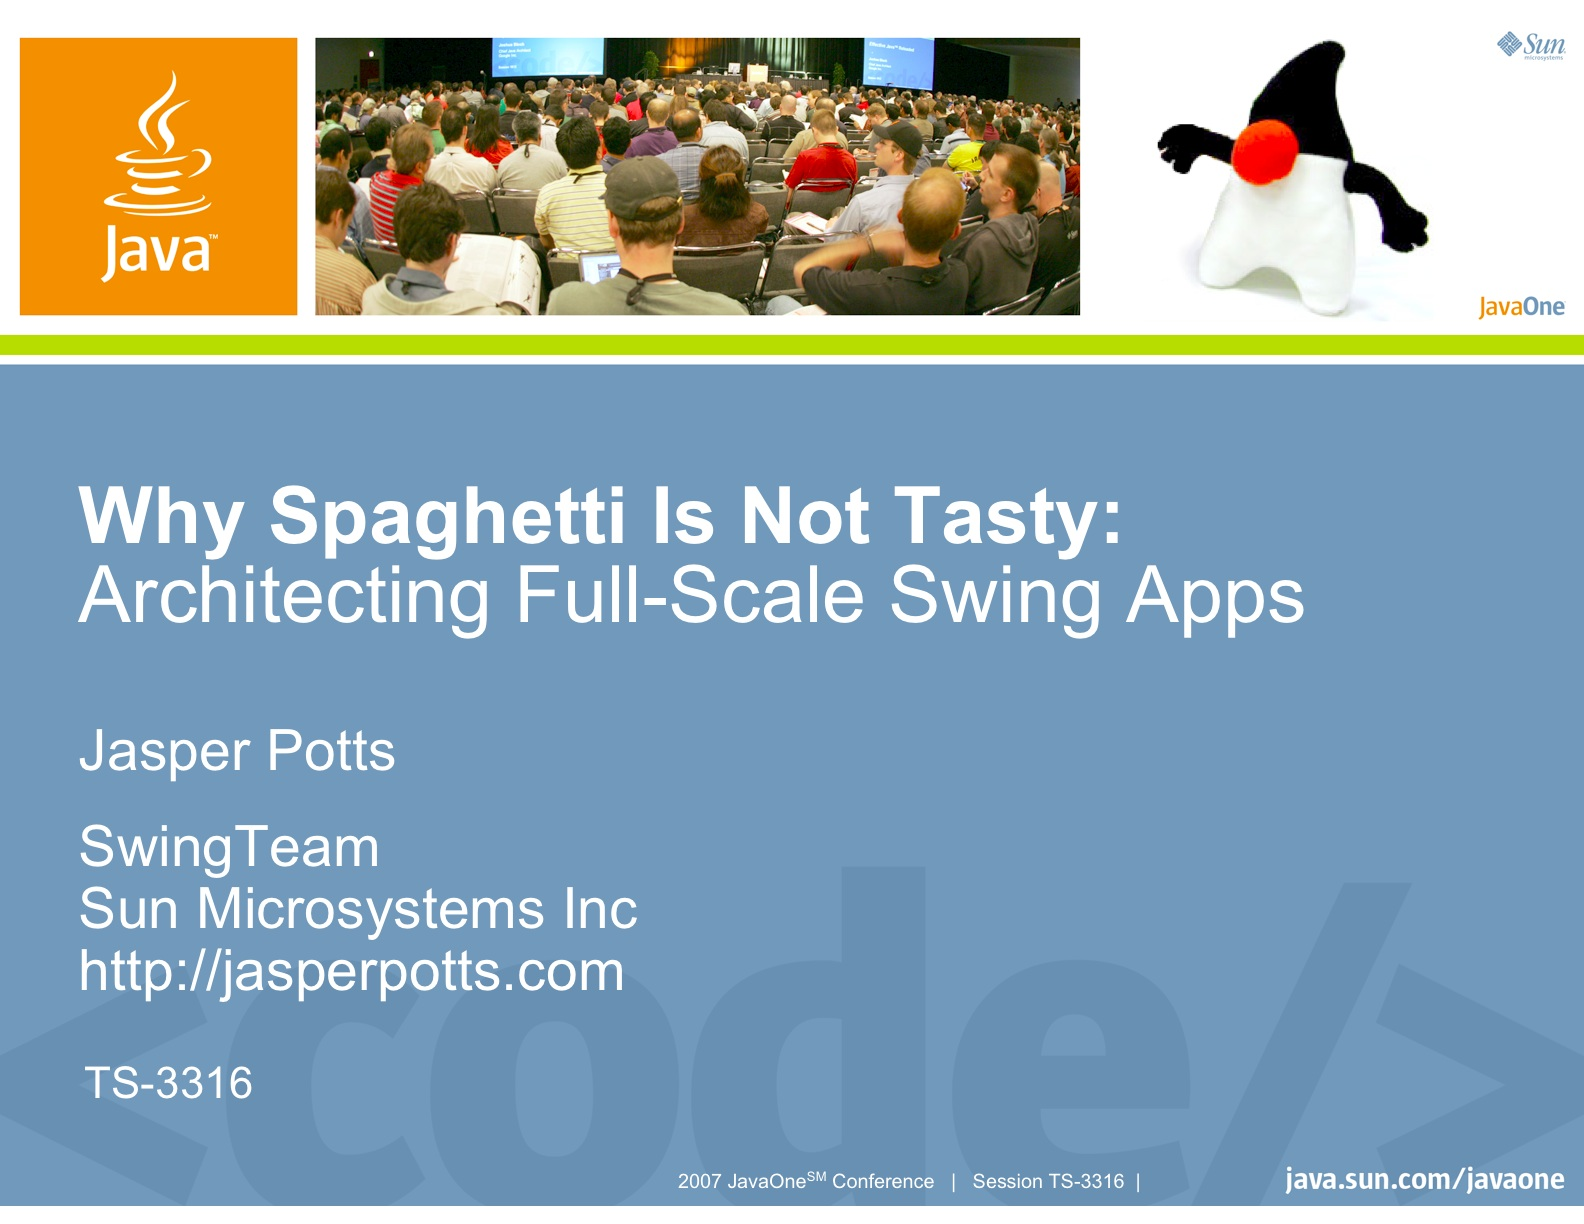 Why Spaghetti Is Not Tasty: Architecting Full-Scale Swing Apps